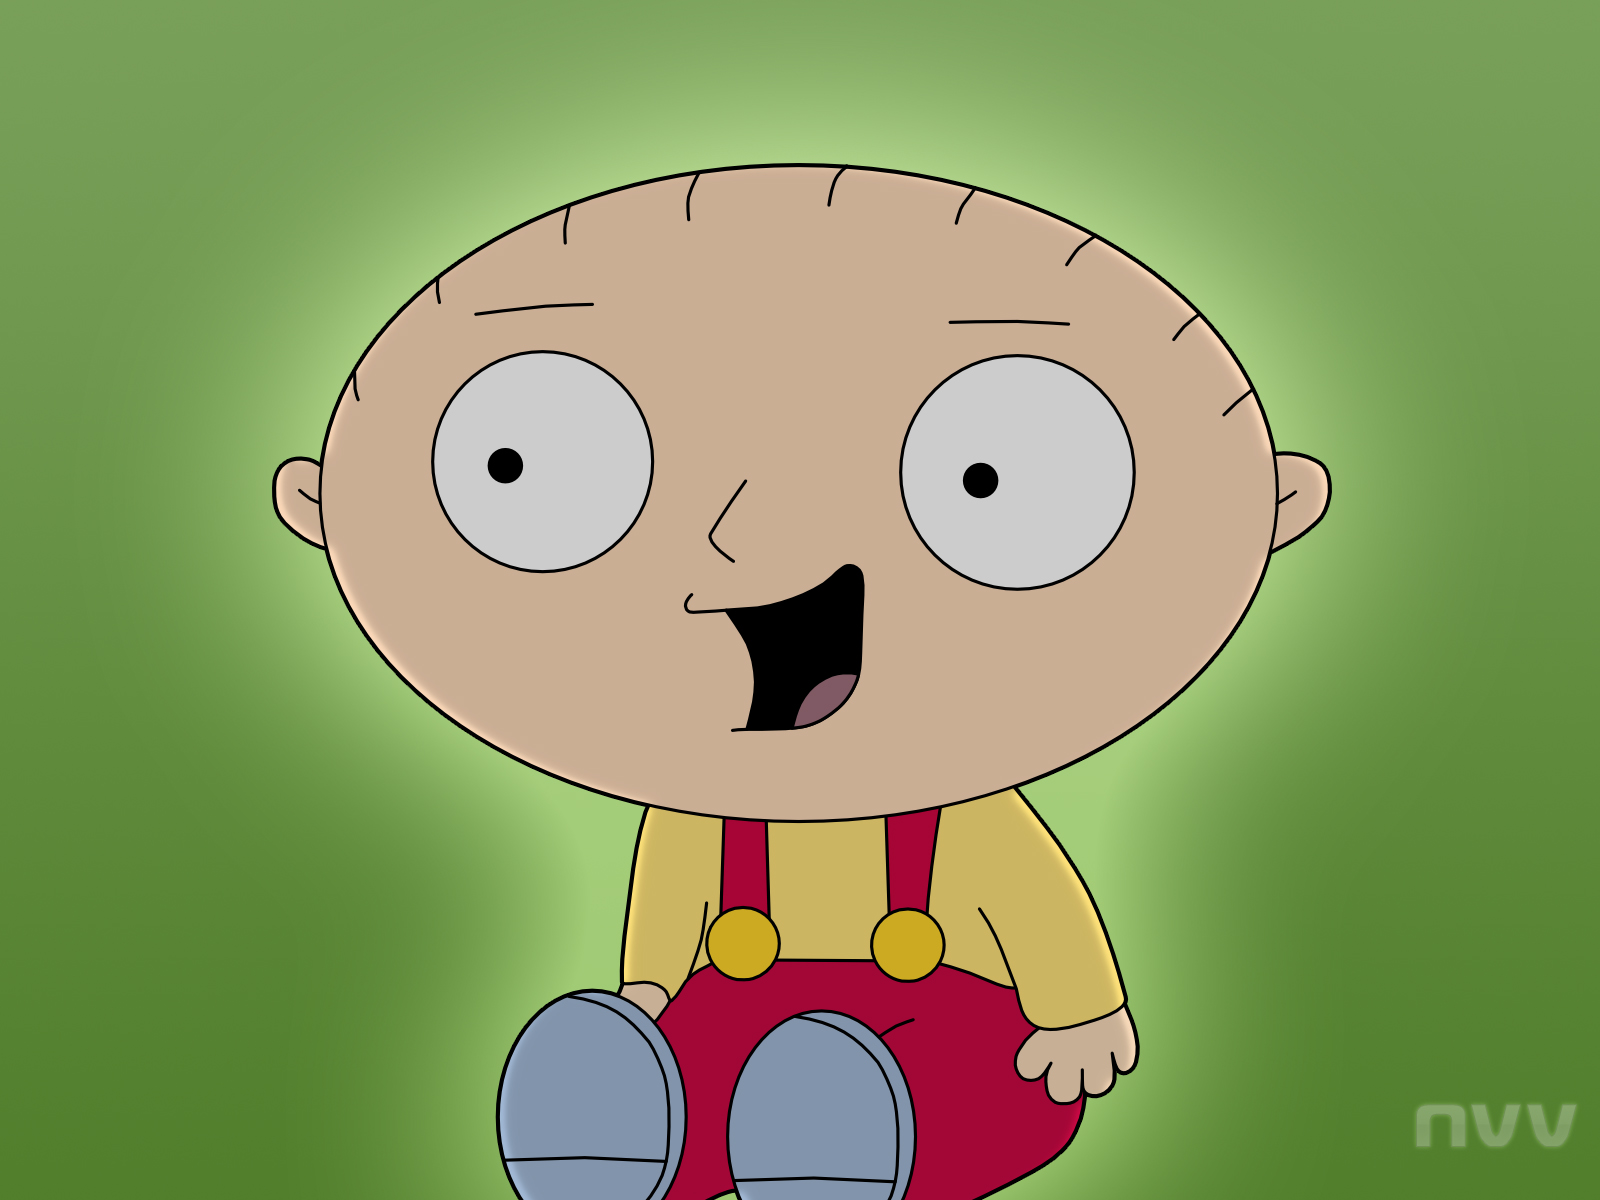 CapRiMax                   Oh  Hes the FAMILY GUY